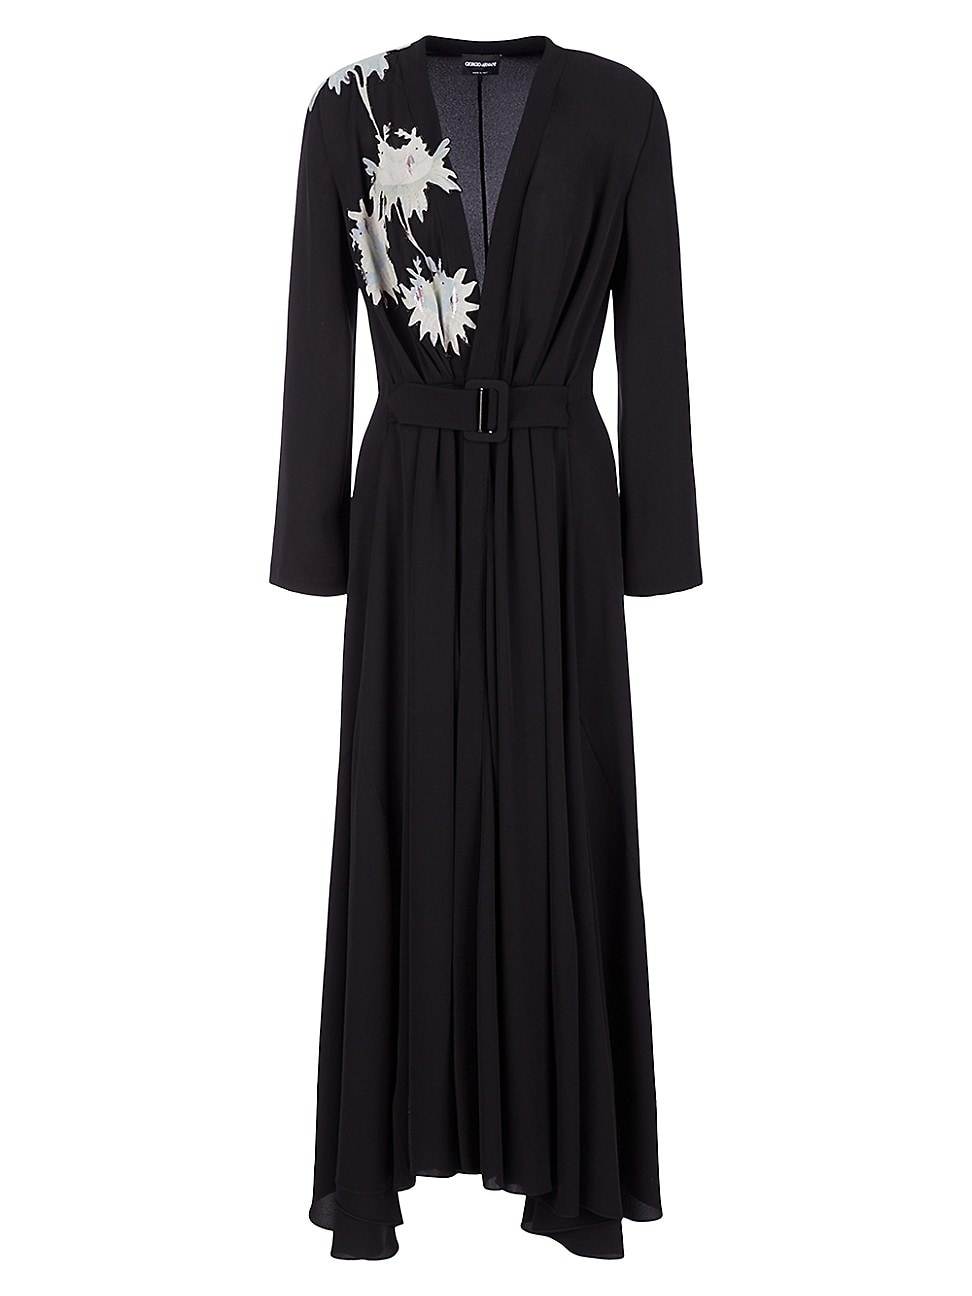 Giorgio Armani WOMEN'S EMBELLISHED HALF-&-HALF BELTED GOWN